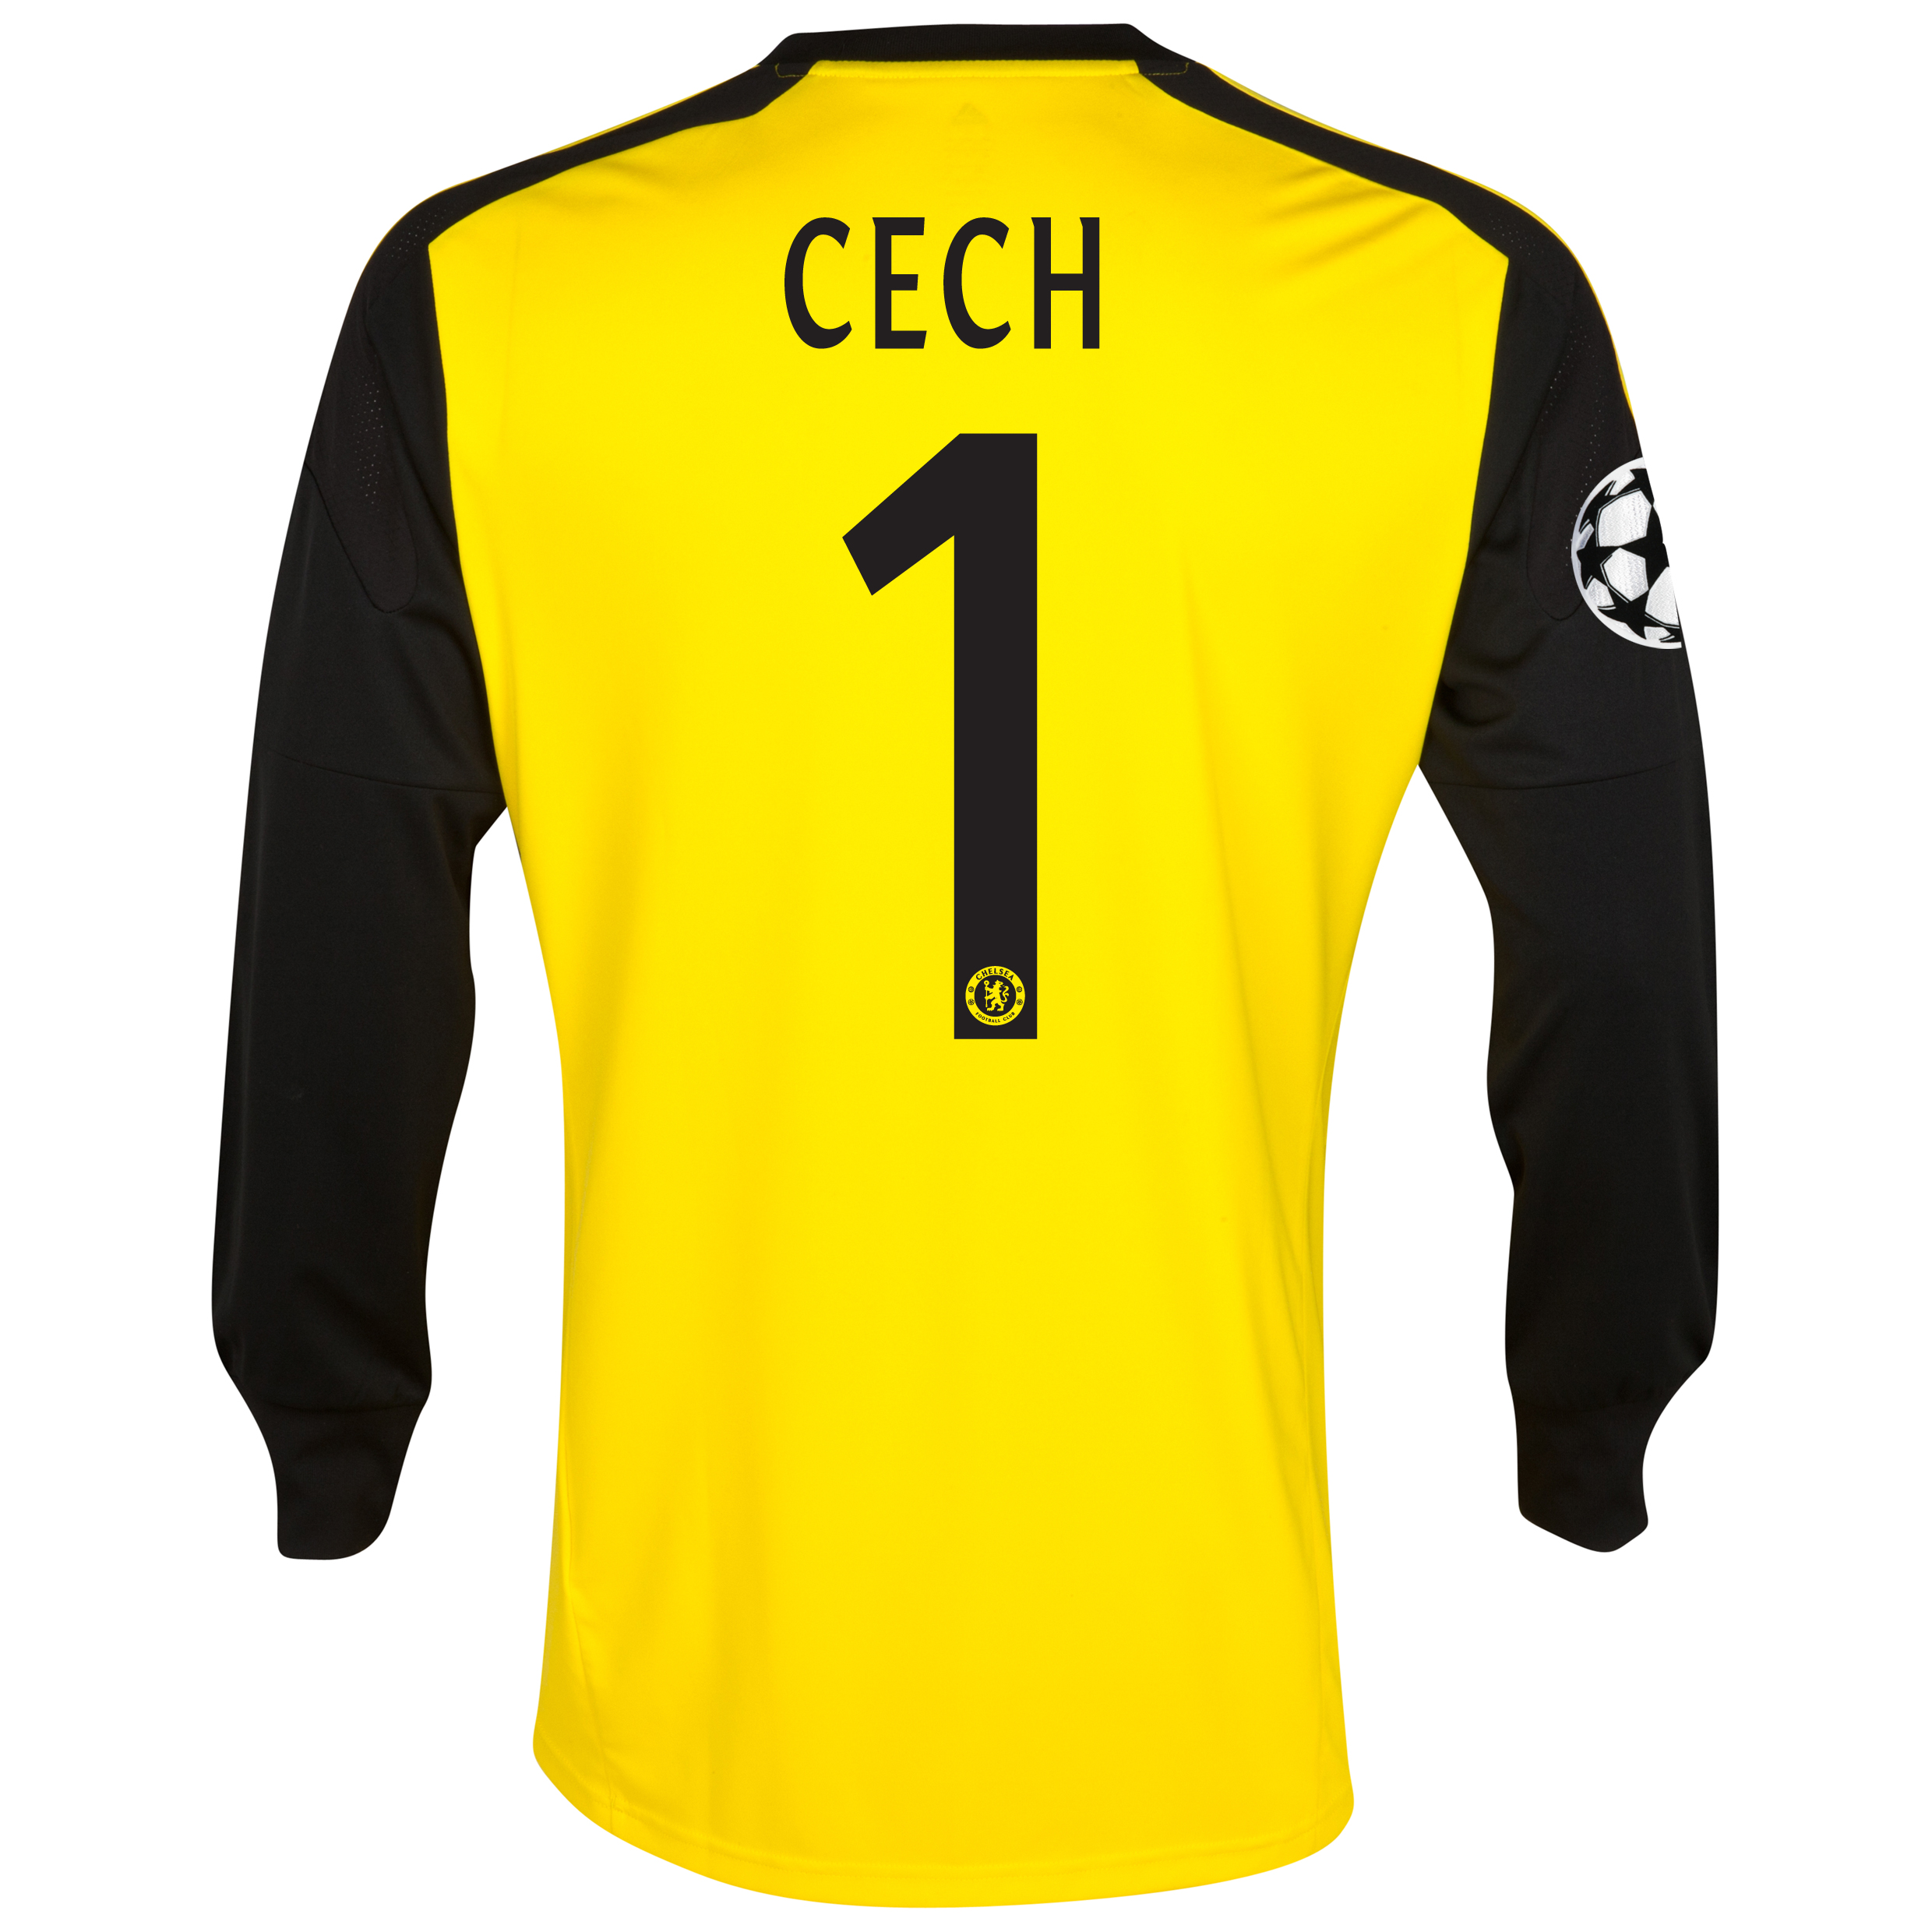 Chelsea UEFA Champions League Home Goalkeeper Shirt 2013/14 kids with Cech 1 printing